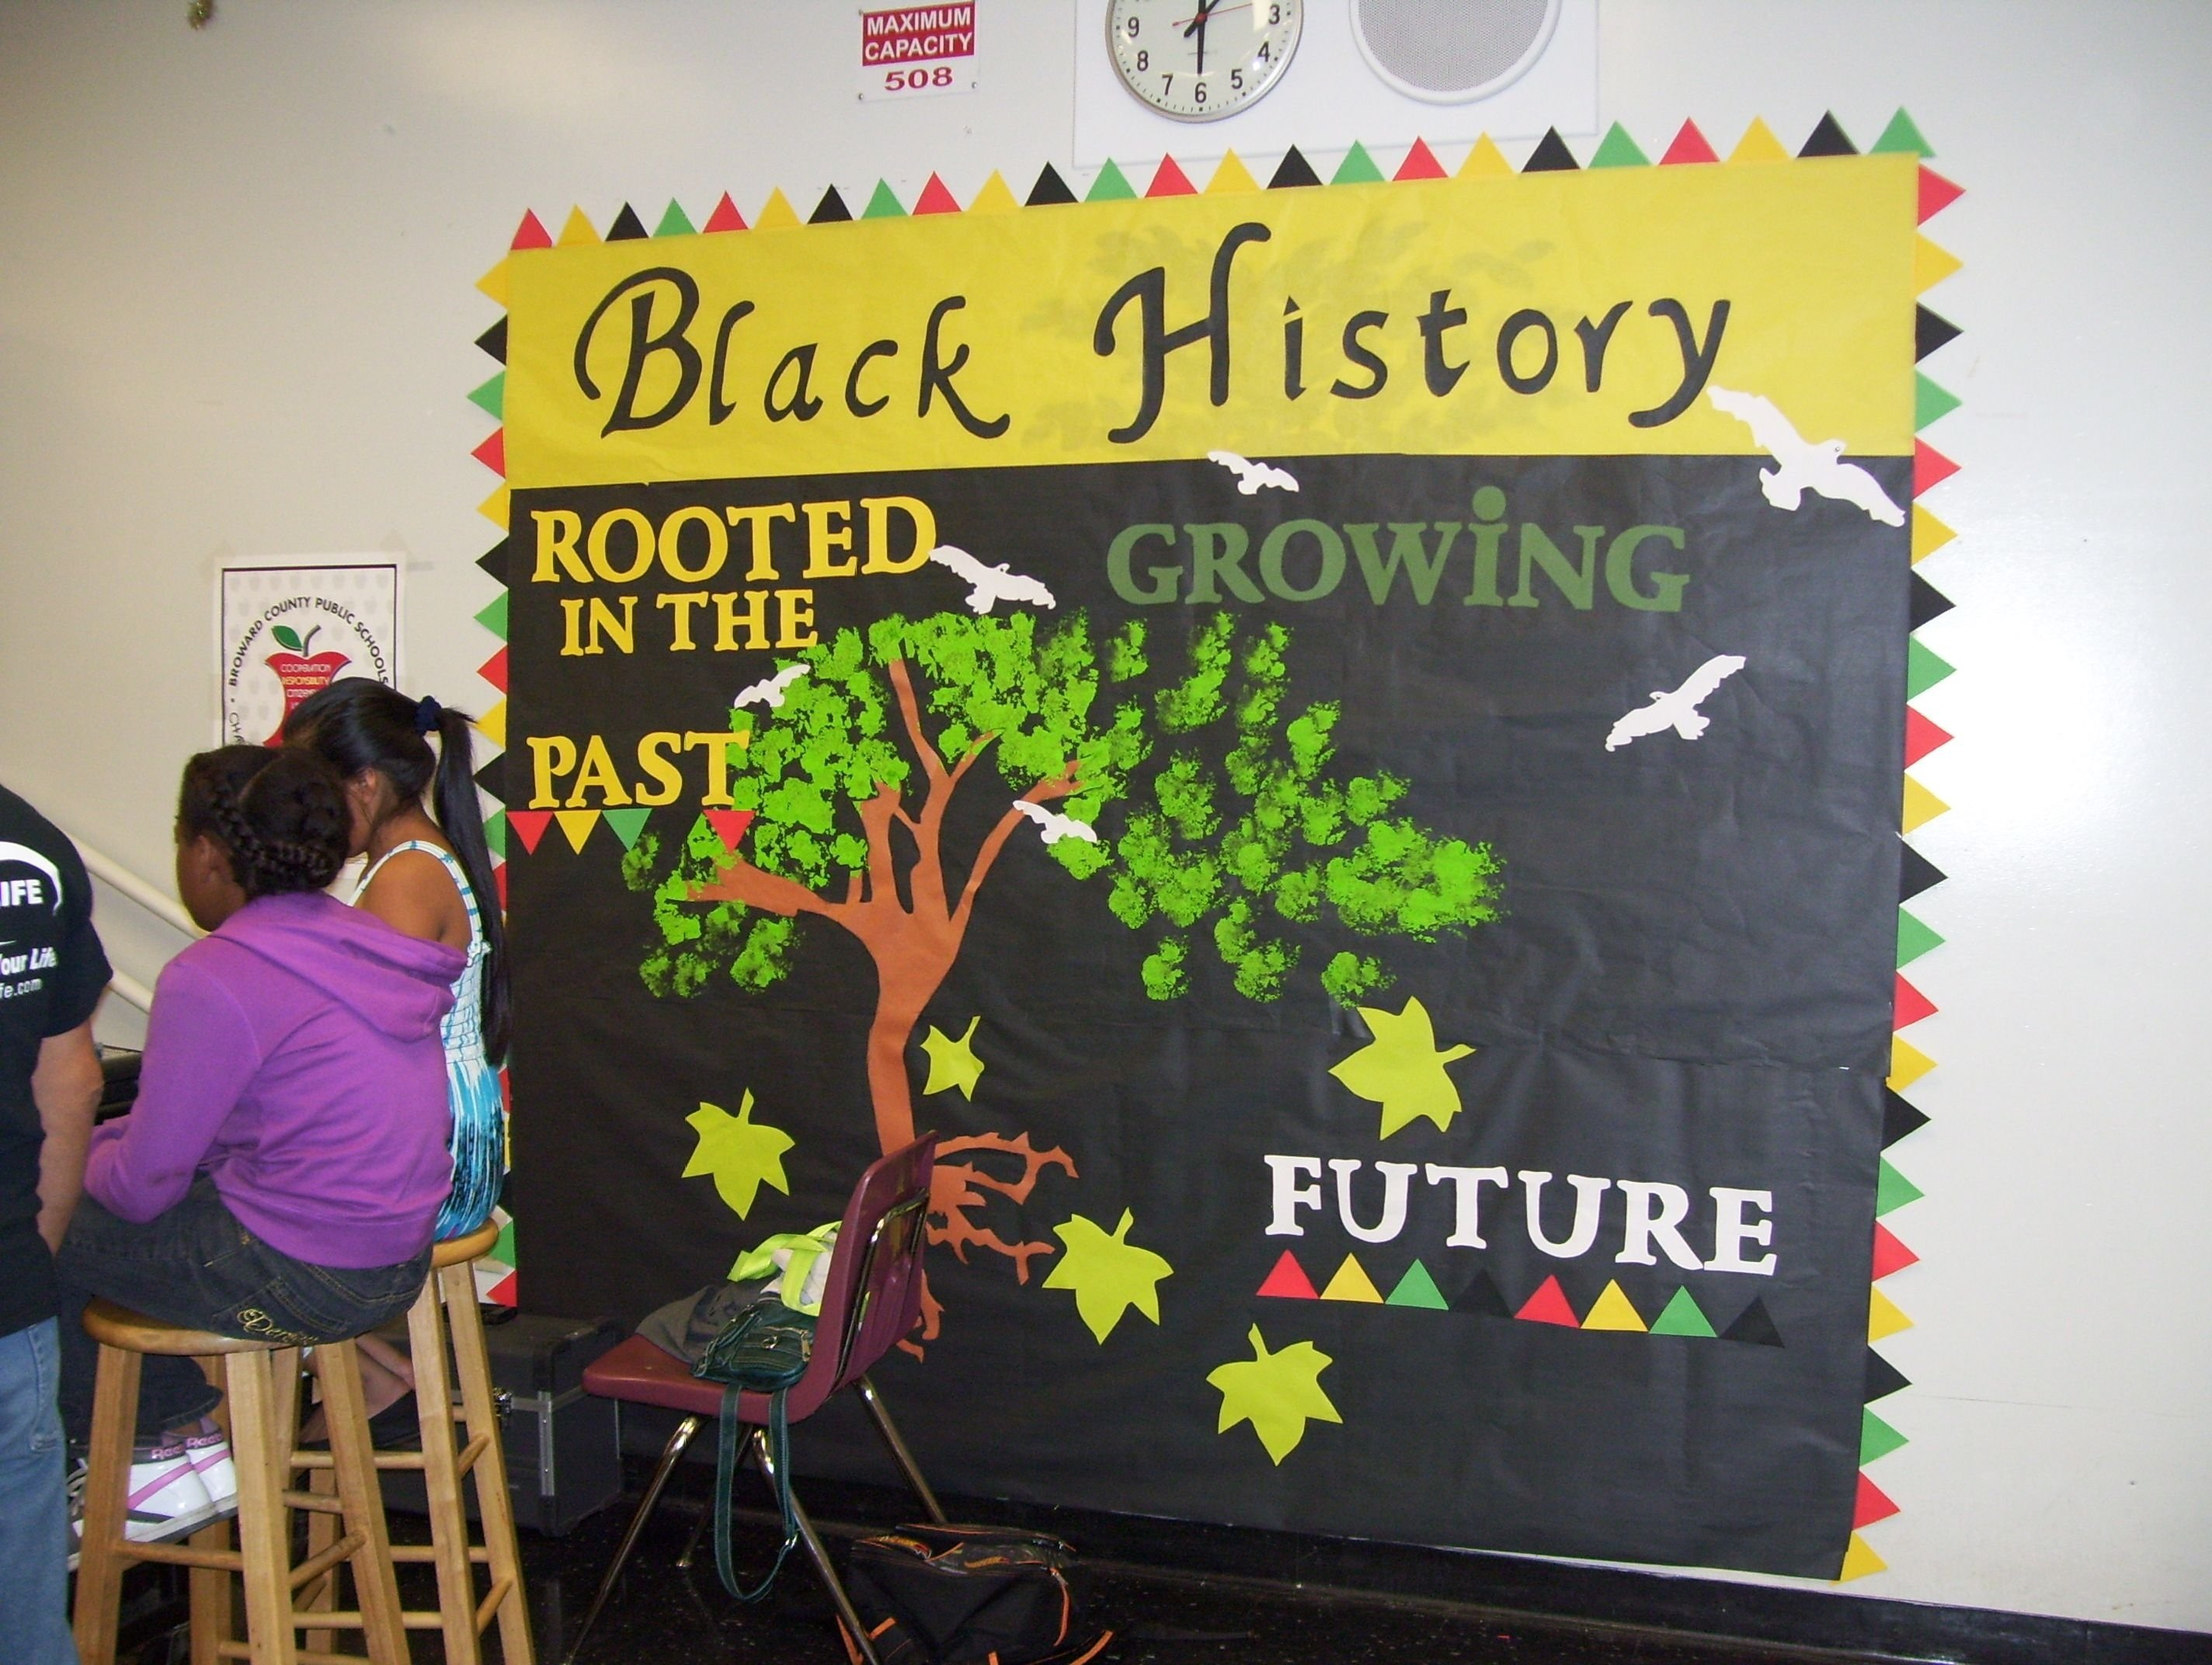 10 Fashionable Black History Month Ideas For Church black history month ideas education pinterest black history 4 2021